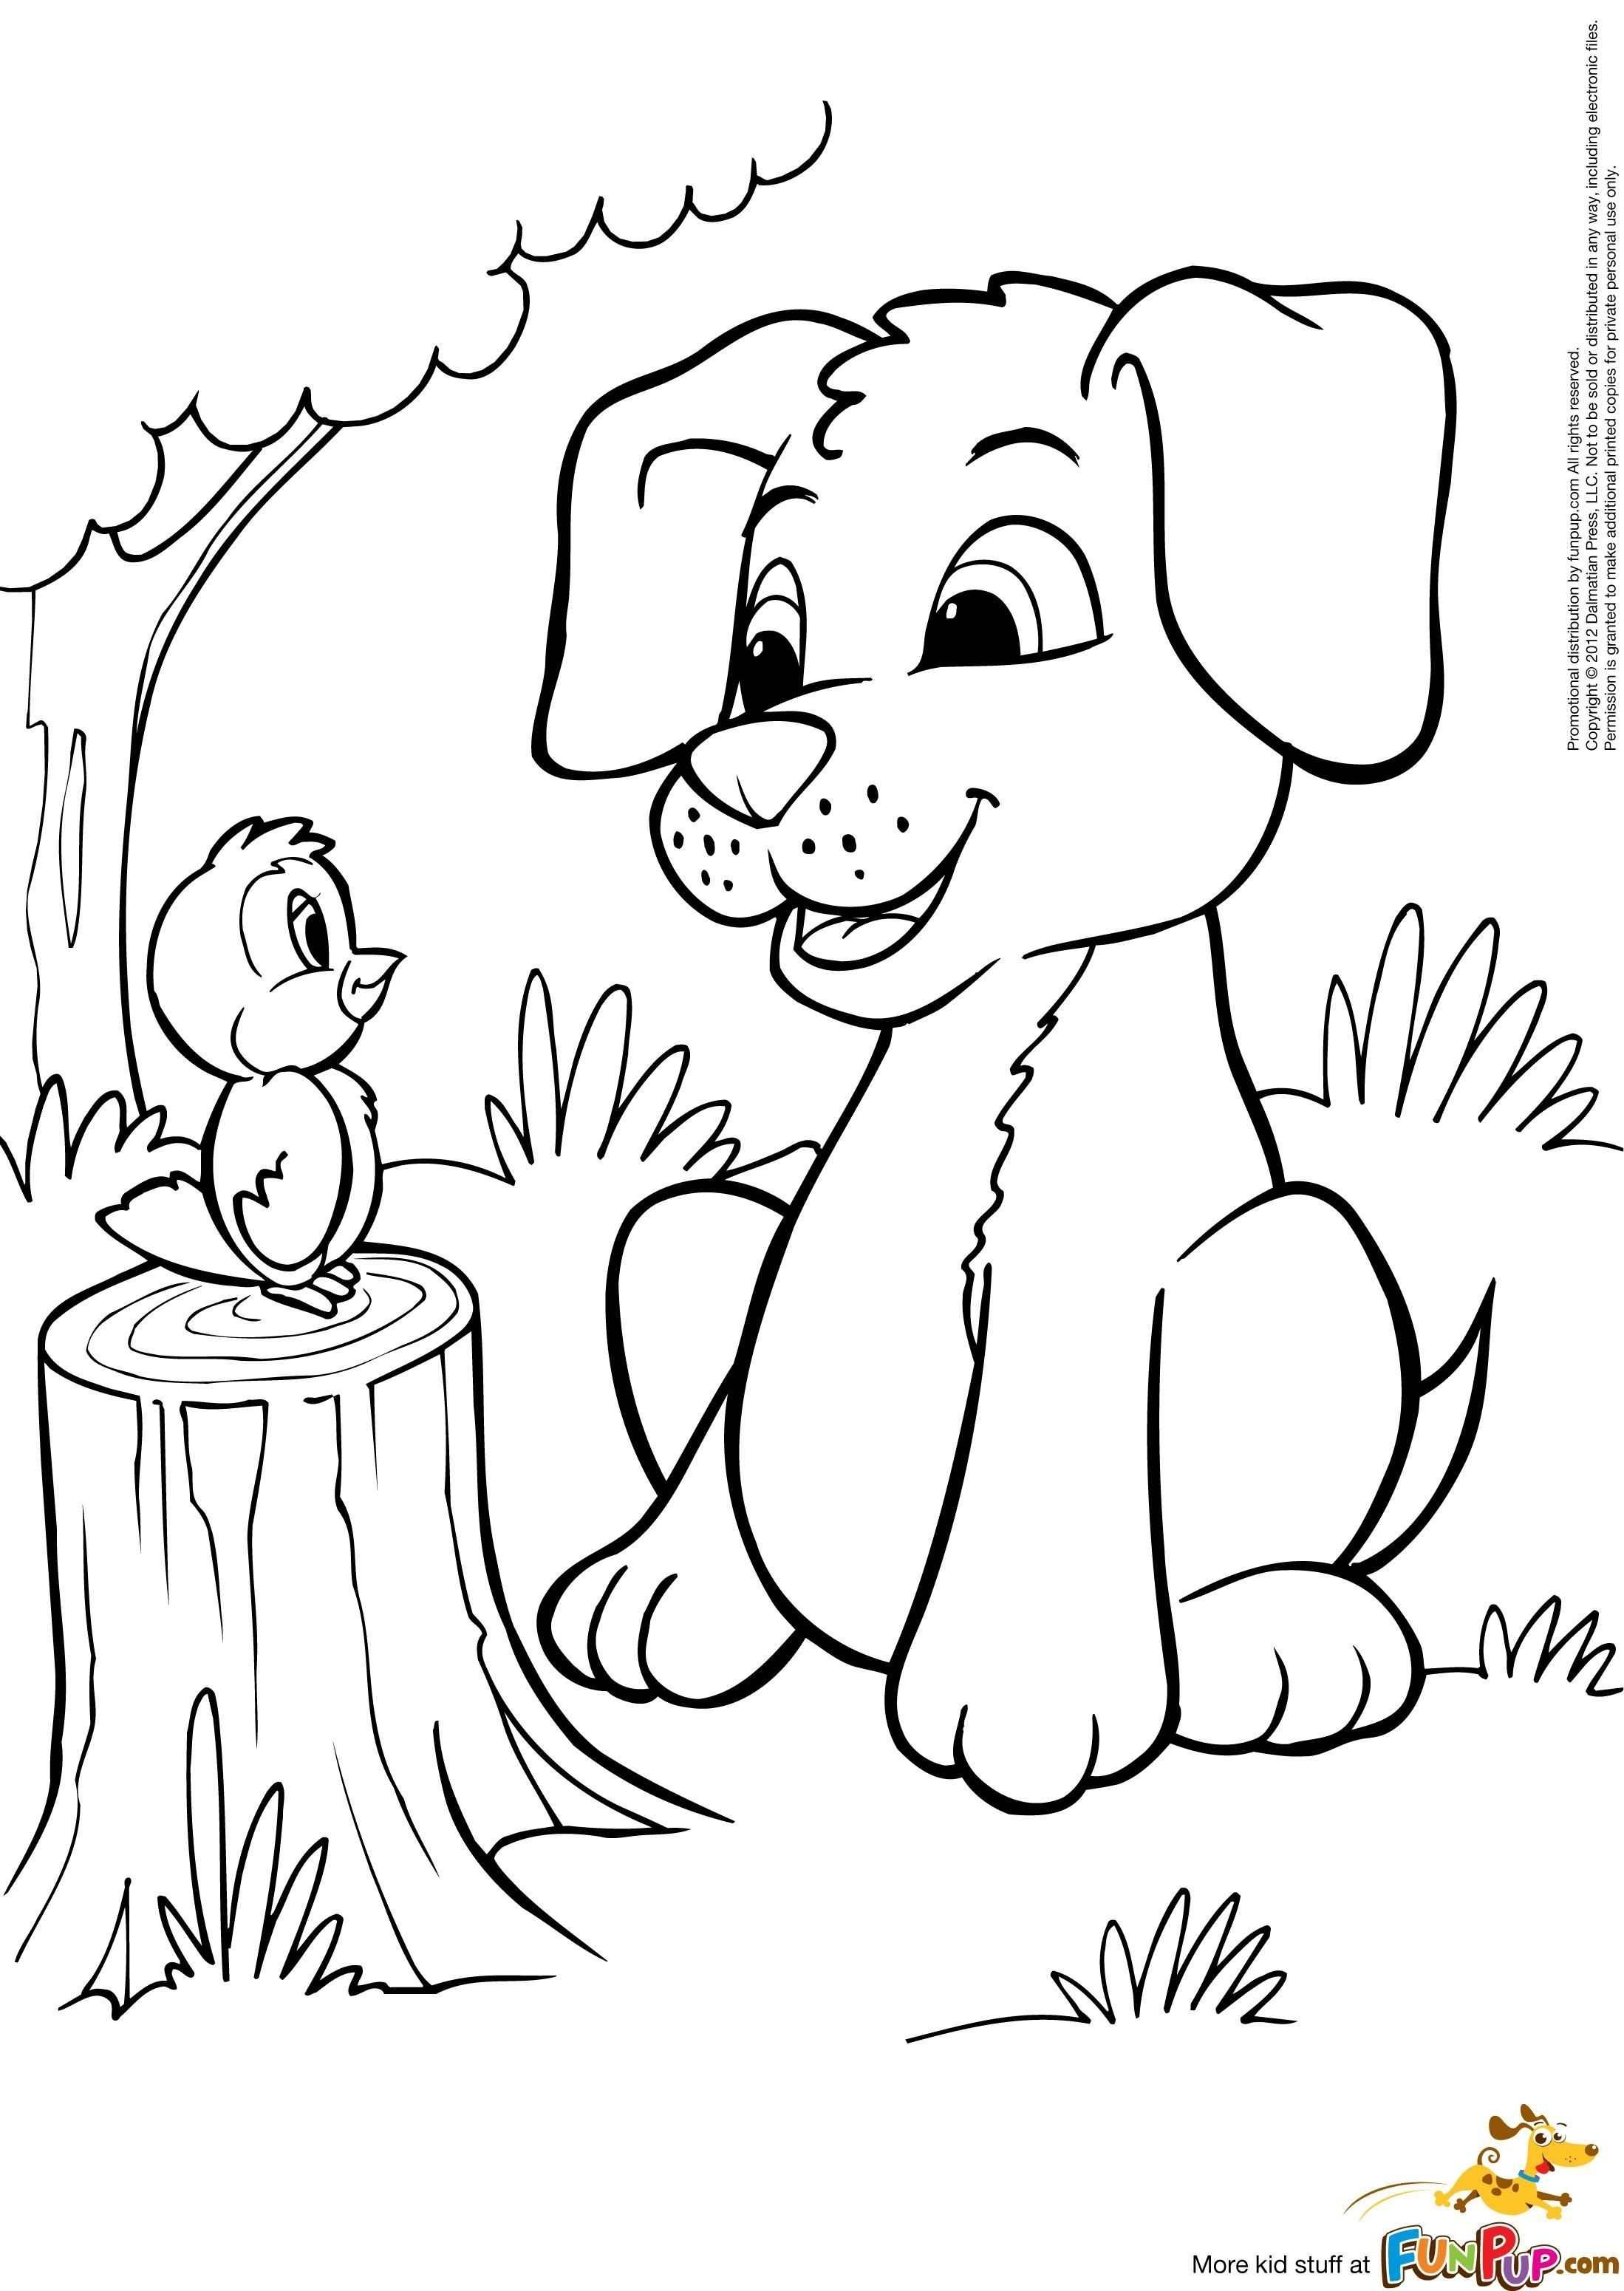 Annabelle Coloring Pages At Getcolorings